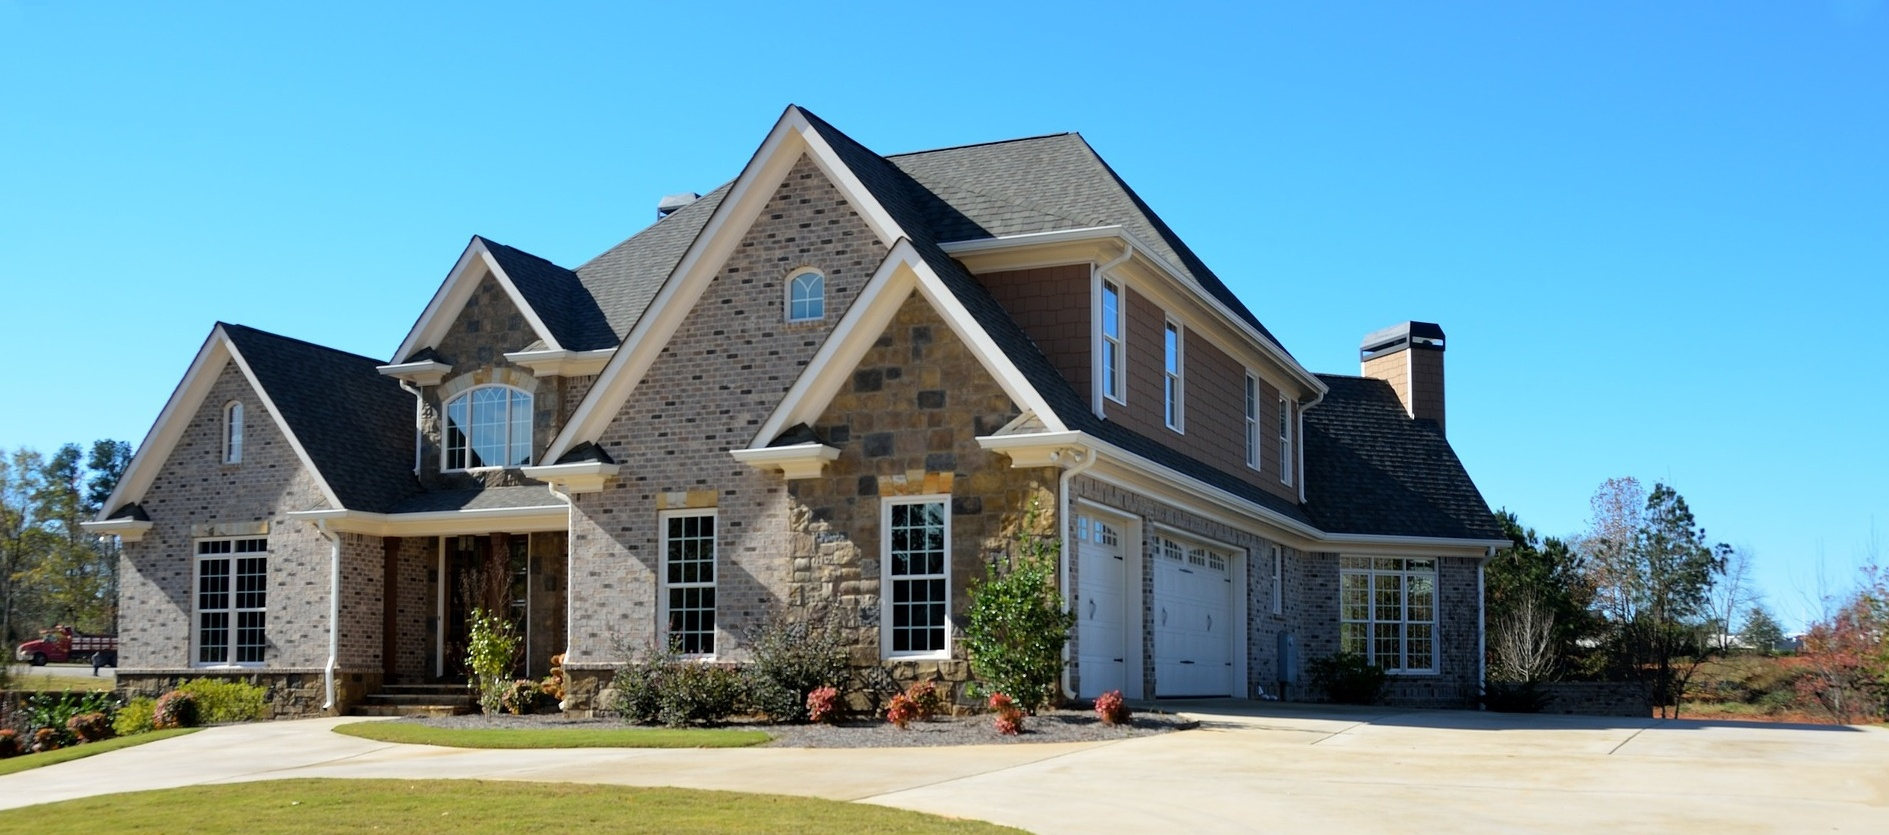 Indianapolis Home with Home Insurance Coverage